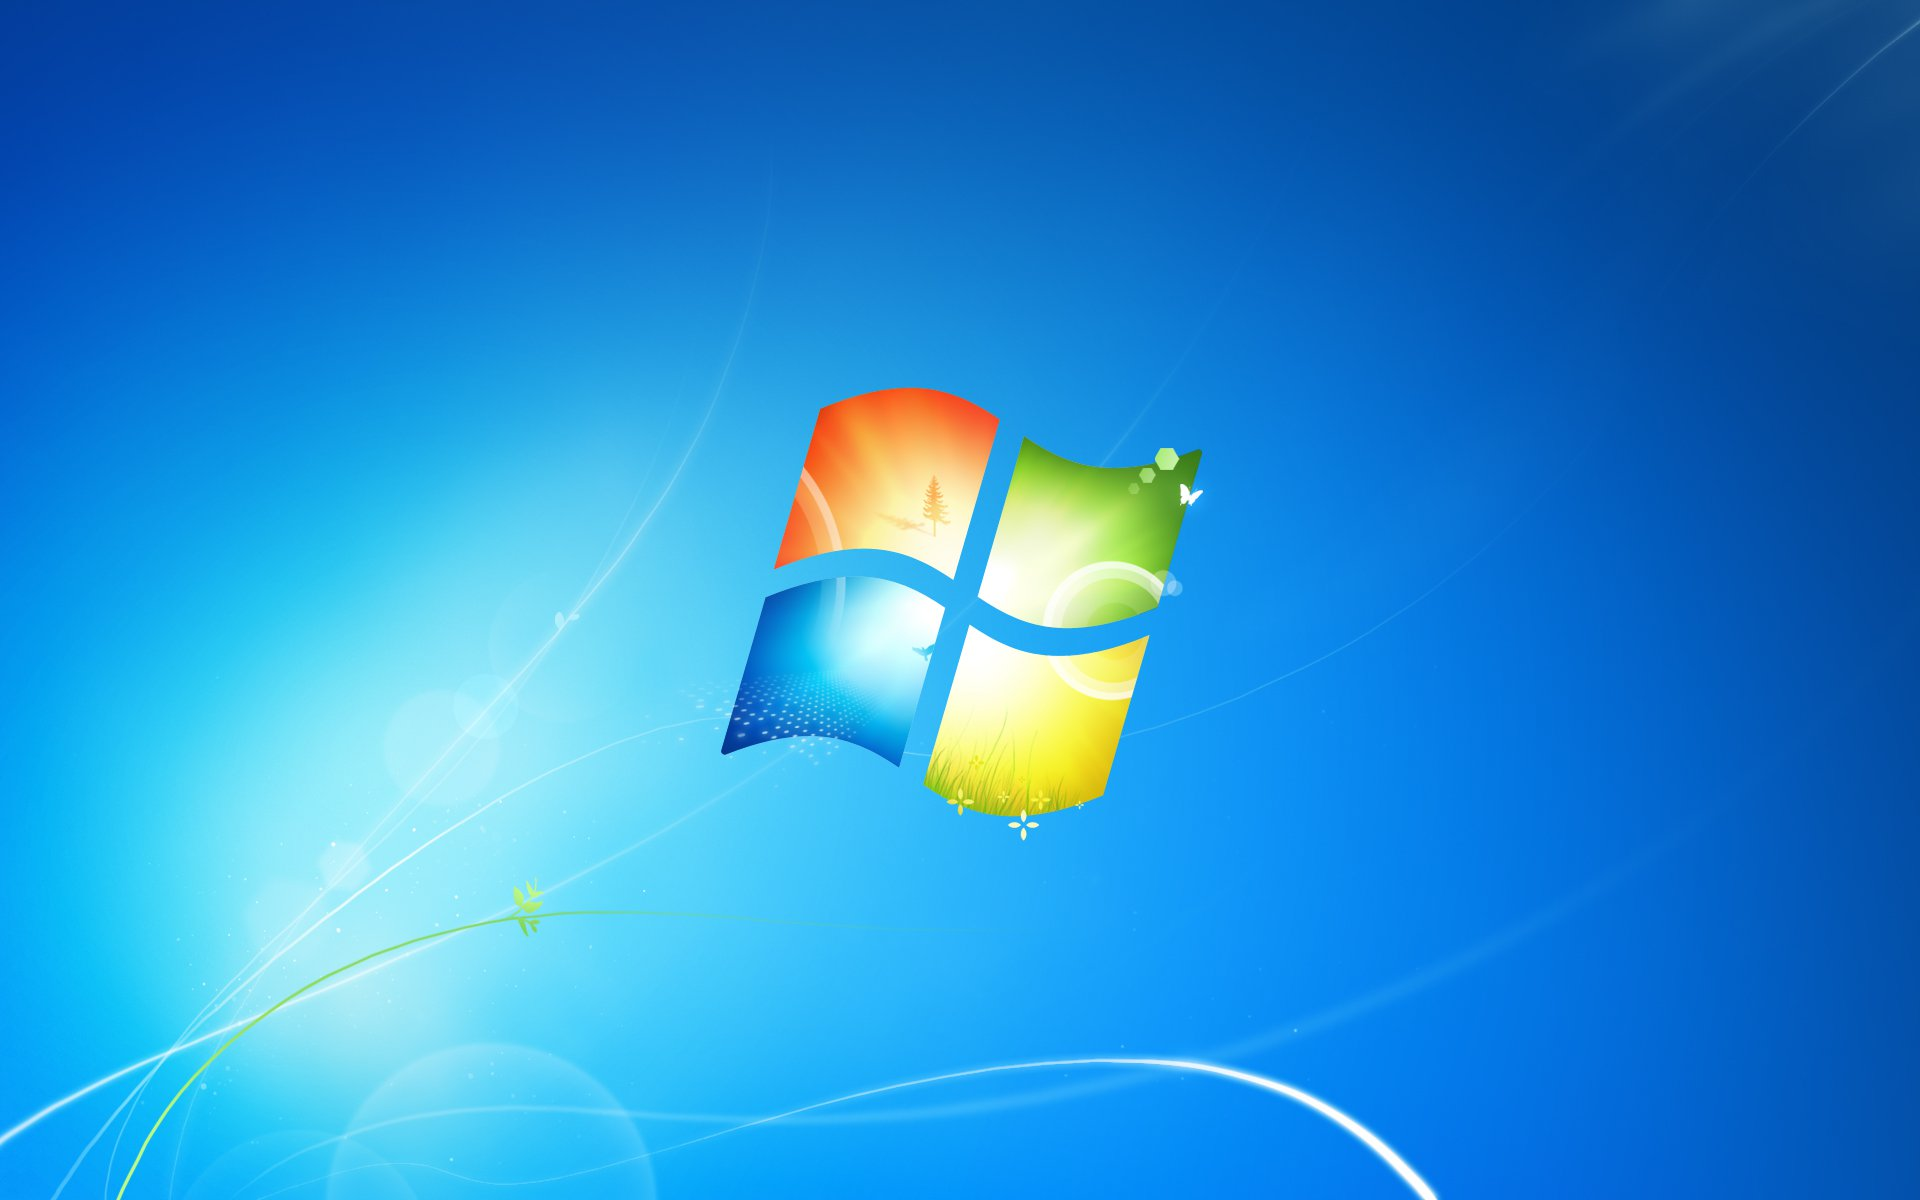 windows 7 wallpaperjpg 1920x1200